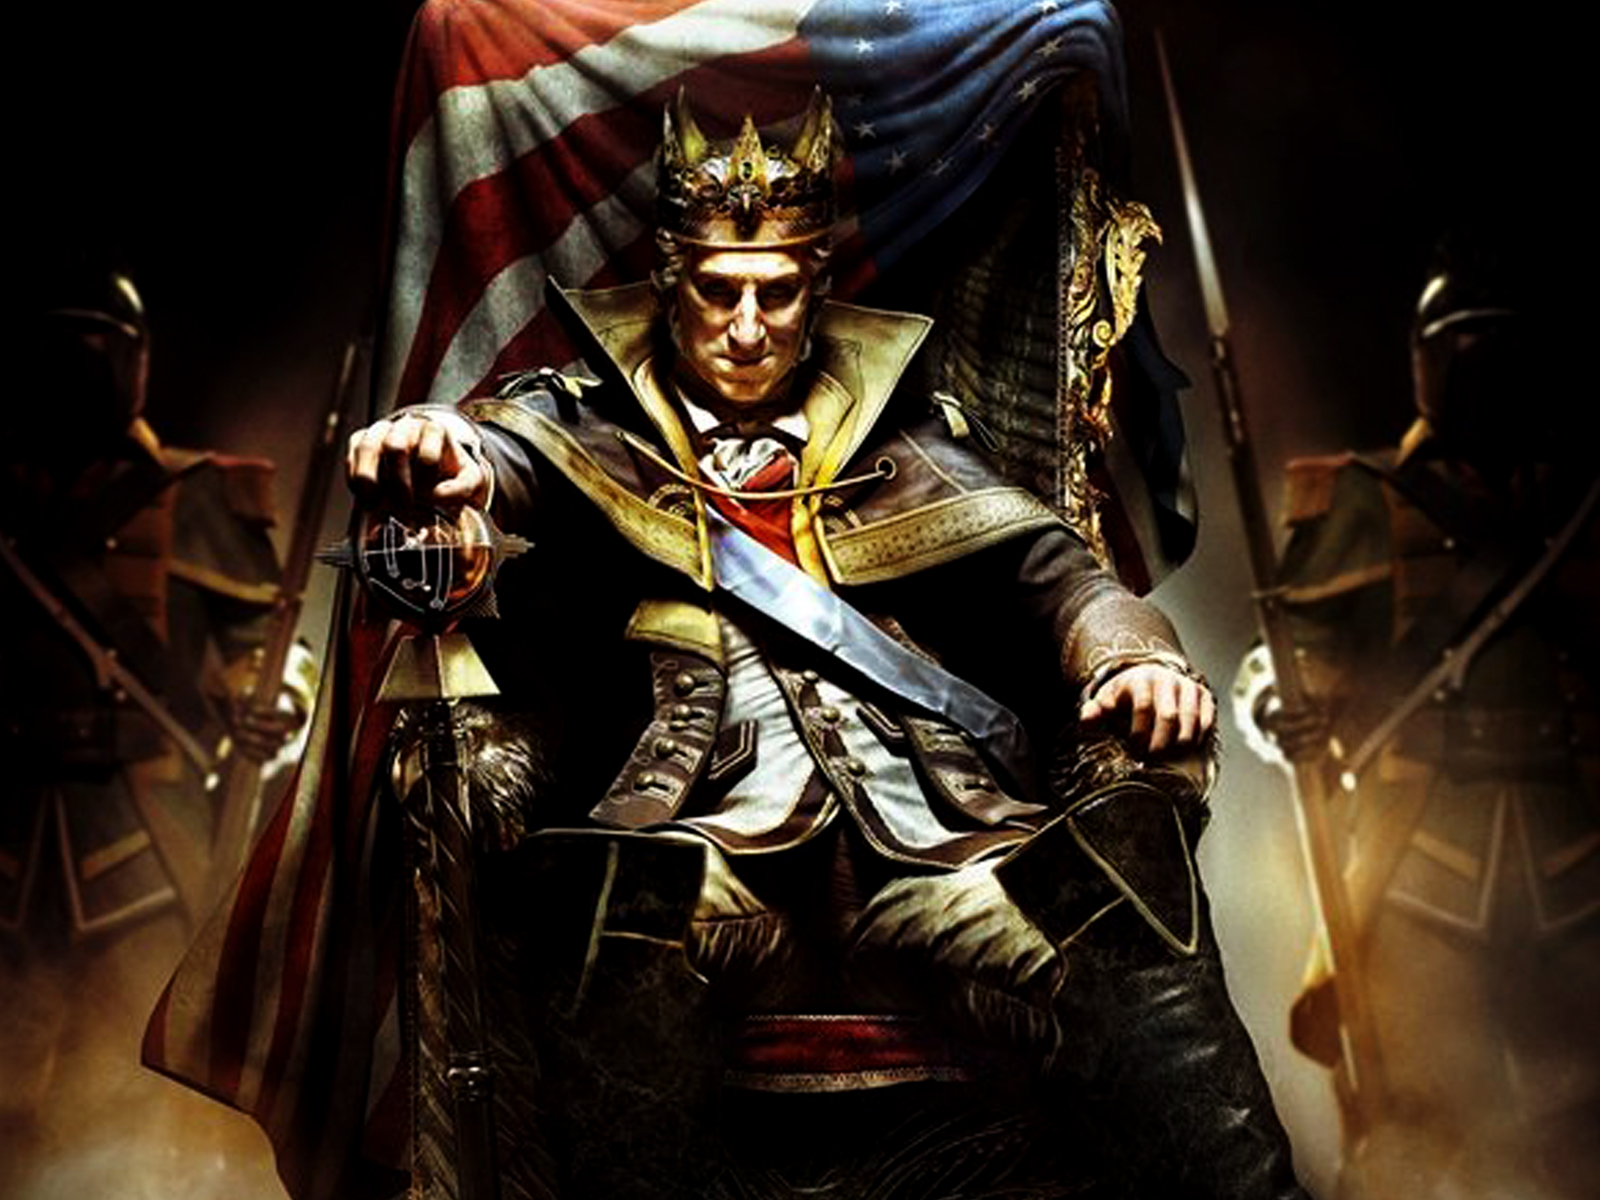 http://3.bp.blogspot.com/-ZQKi36ZWrB0/UG2cyTolYKI/AAAAAAAAFLw/ZBhB6yI5NE4/s1600/Assasins-Creed-3-George-Washington-on-Throne-HD-Wallpaper.jpg